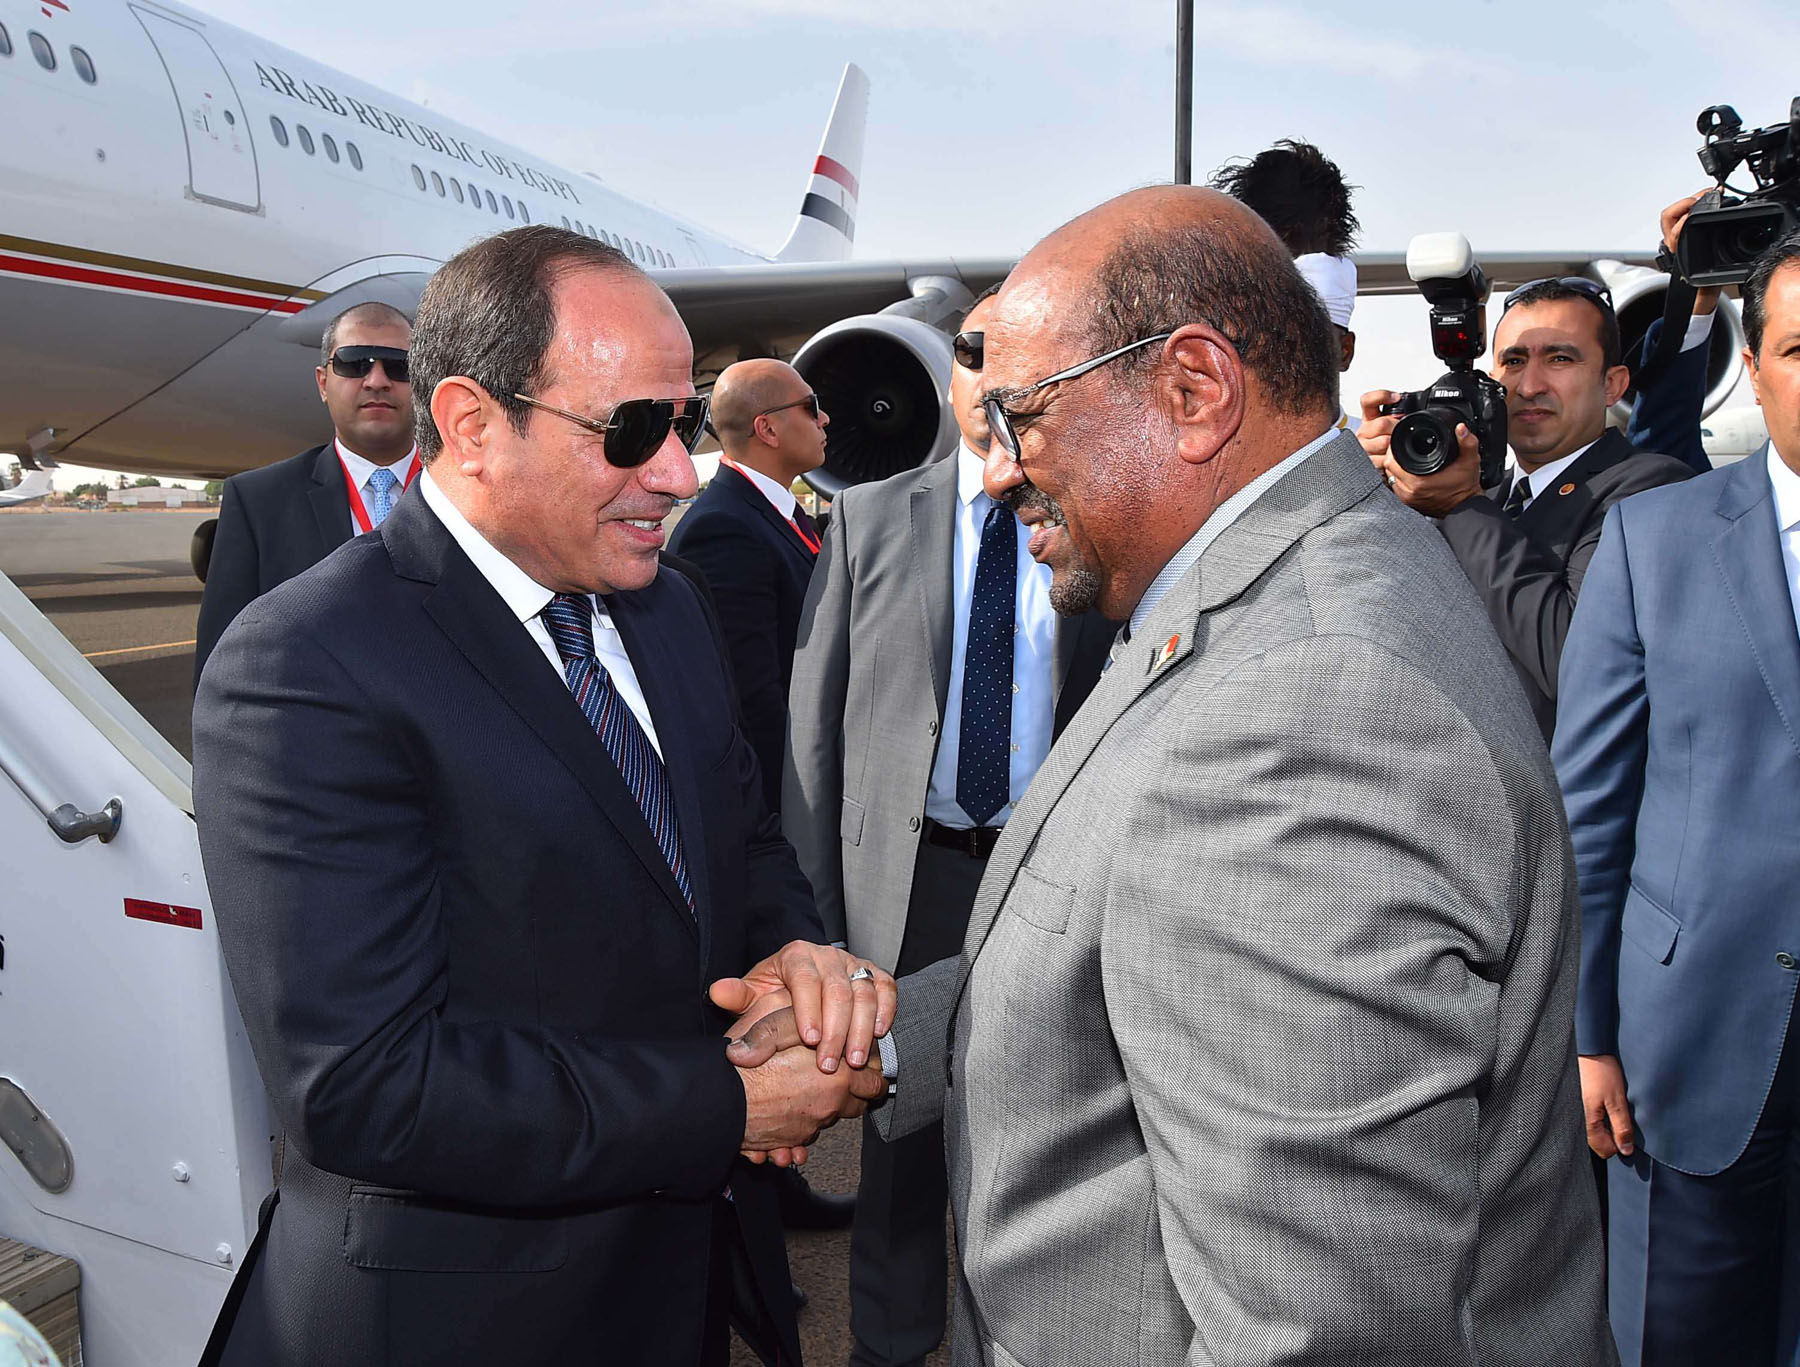 Sudanese President Omar al-Bashir (R) greets Egyptian President Abdel Fattah  al-Sisi in Khartoum, on July 19. (Egyptian Presidency)